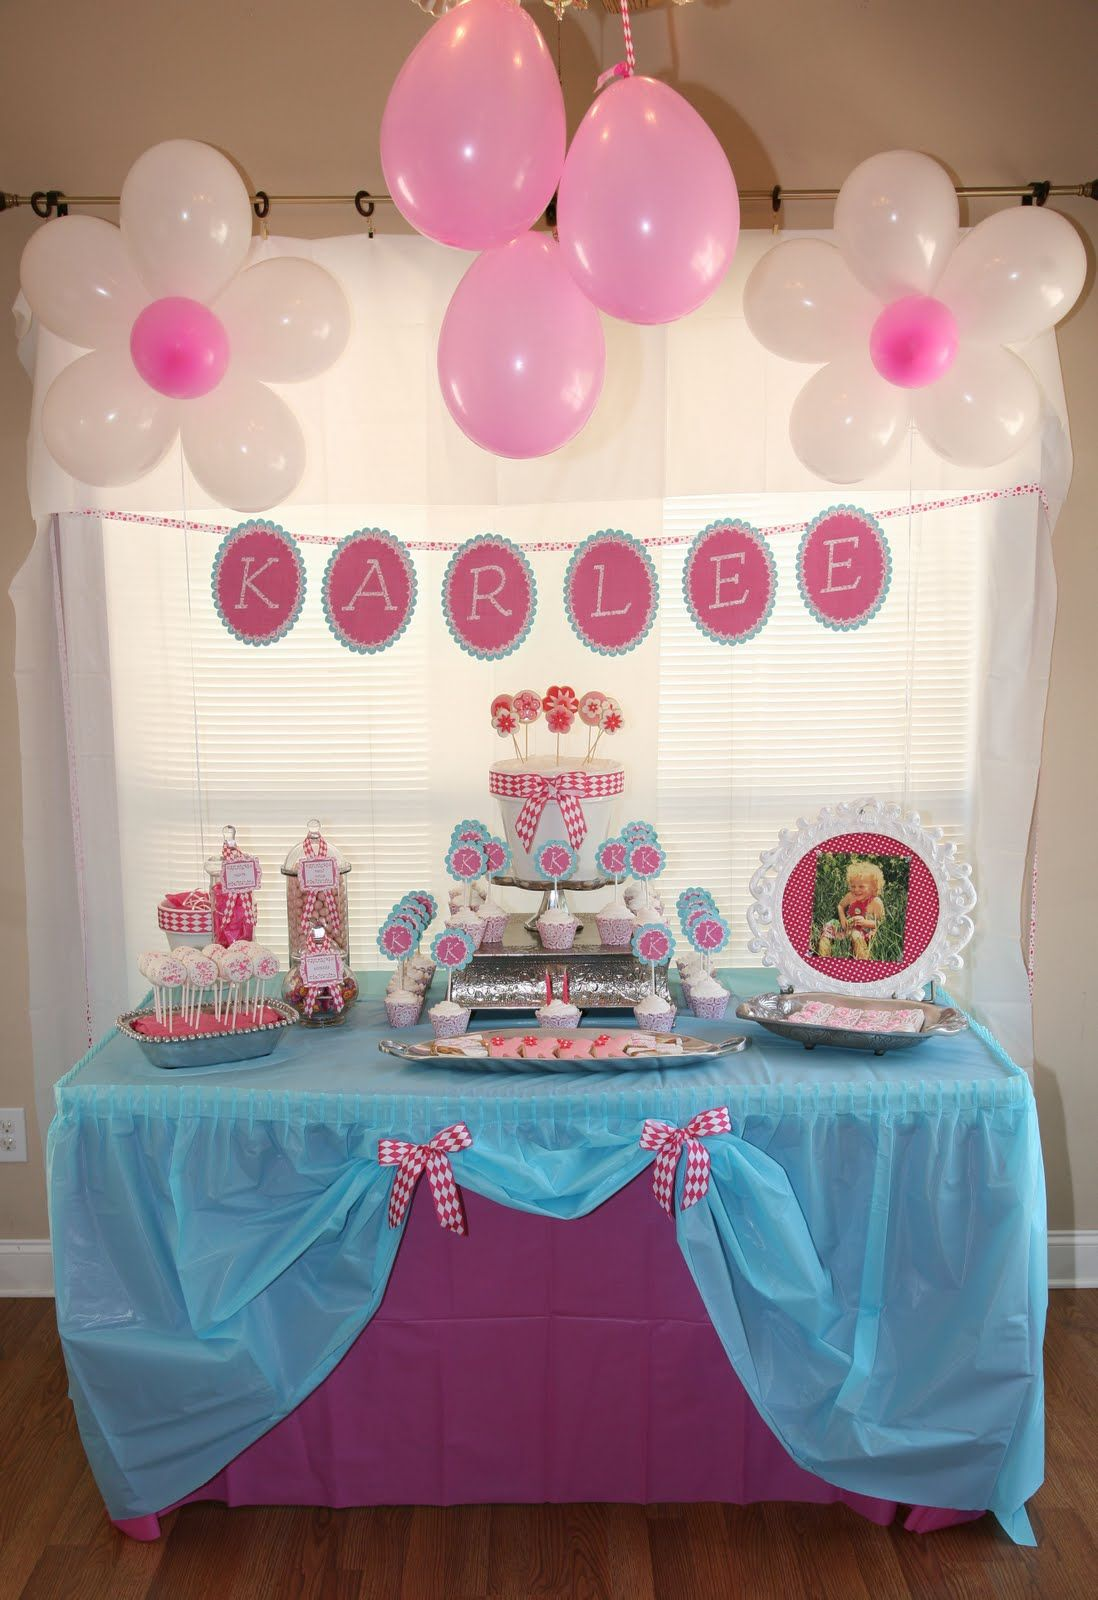 Homemade Princess Party Decorations baby shower by 6 Inches of